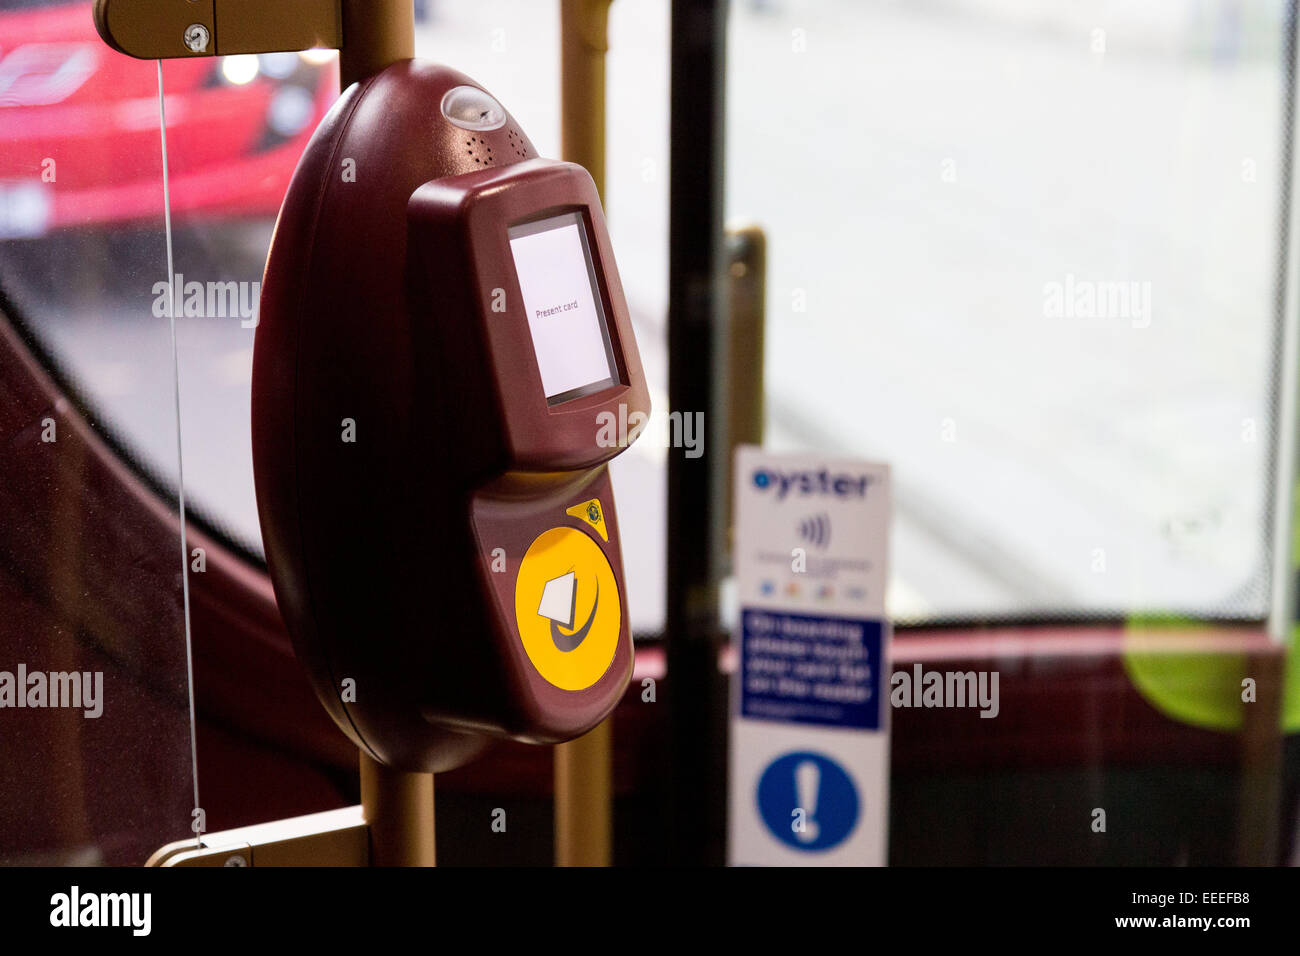 Oyster card reader on the New Bus for London - Stock Image